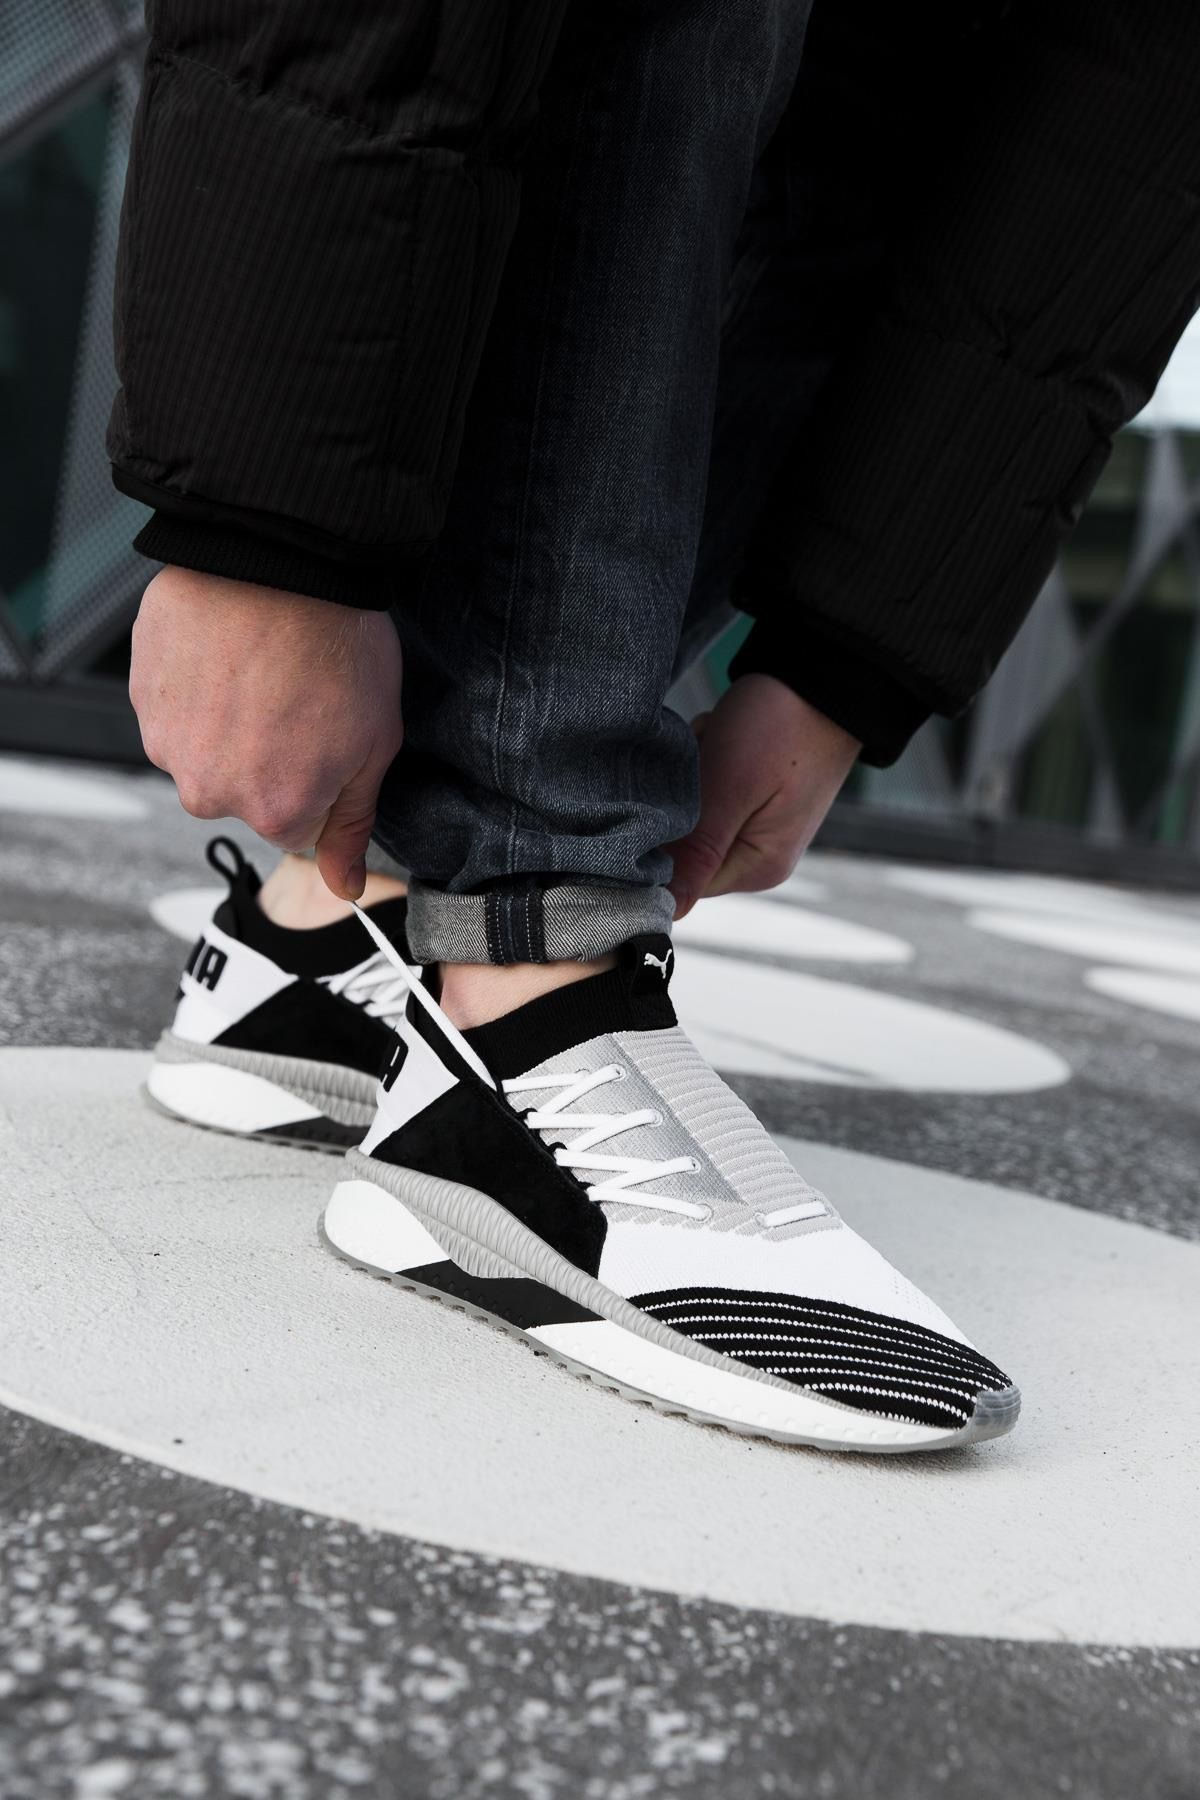 Puma Tsugi Jun #SportsShoes | Sneakers and Designer shoes in